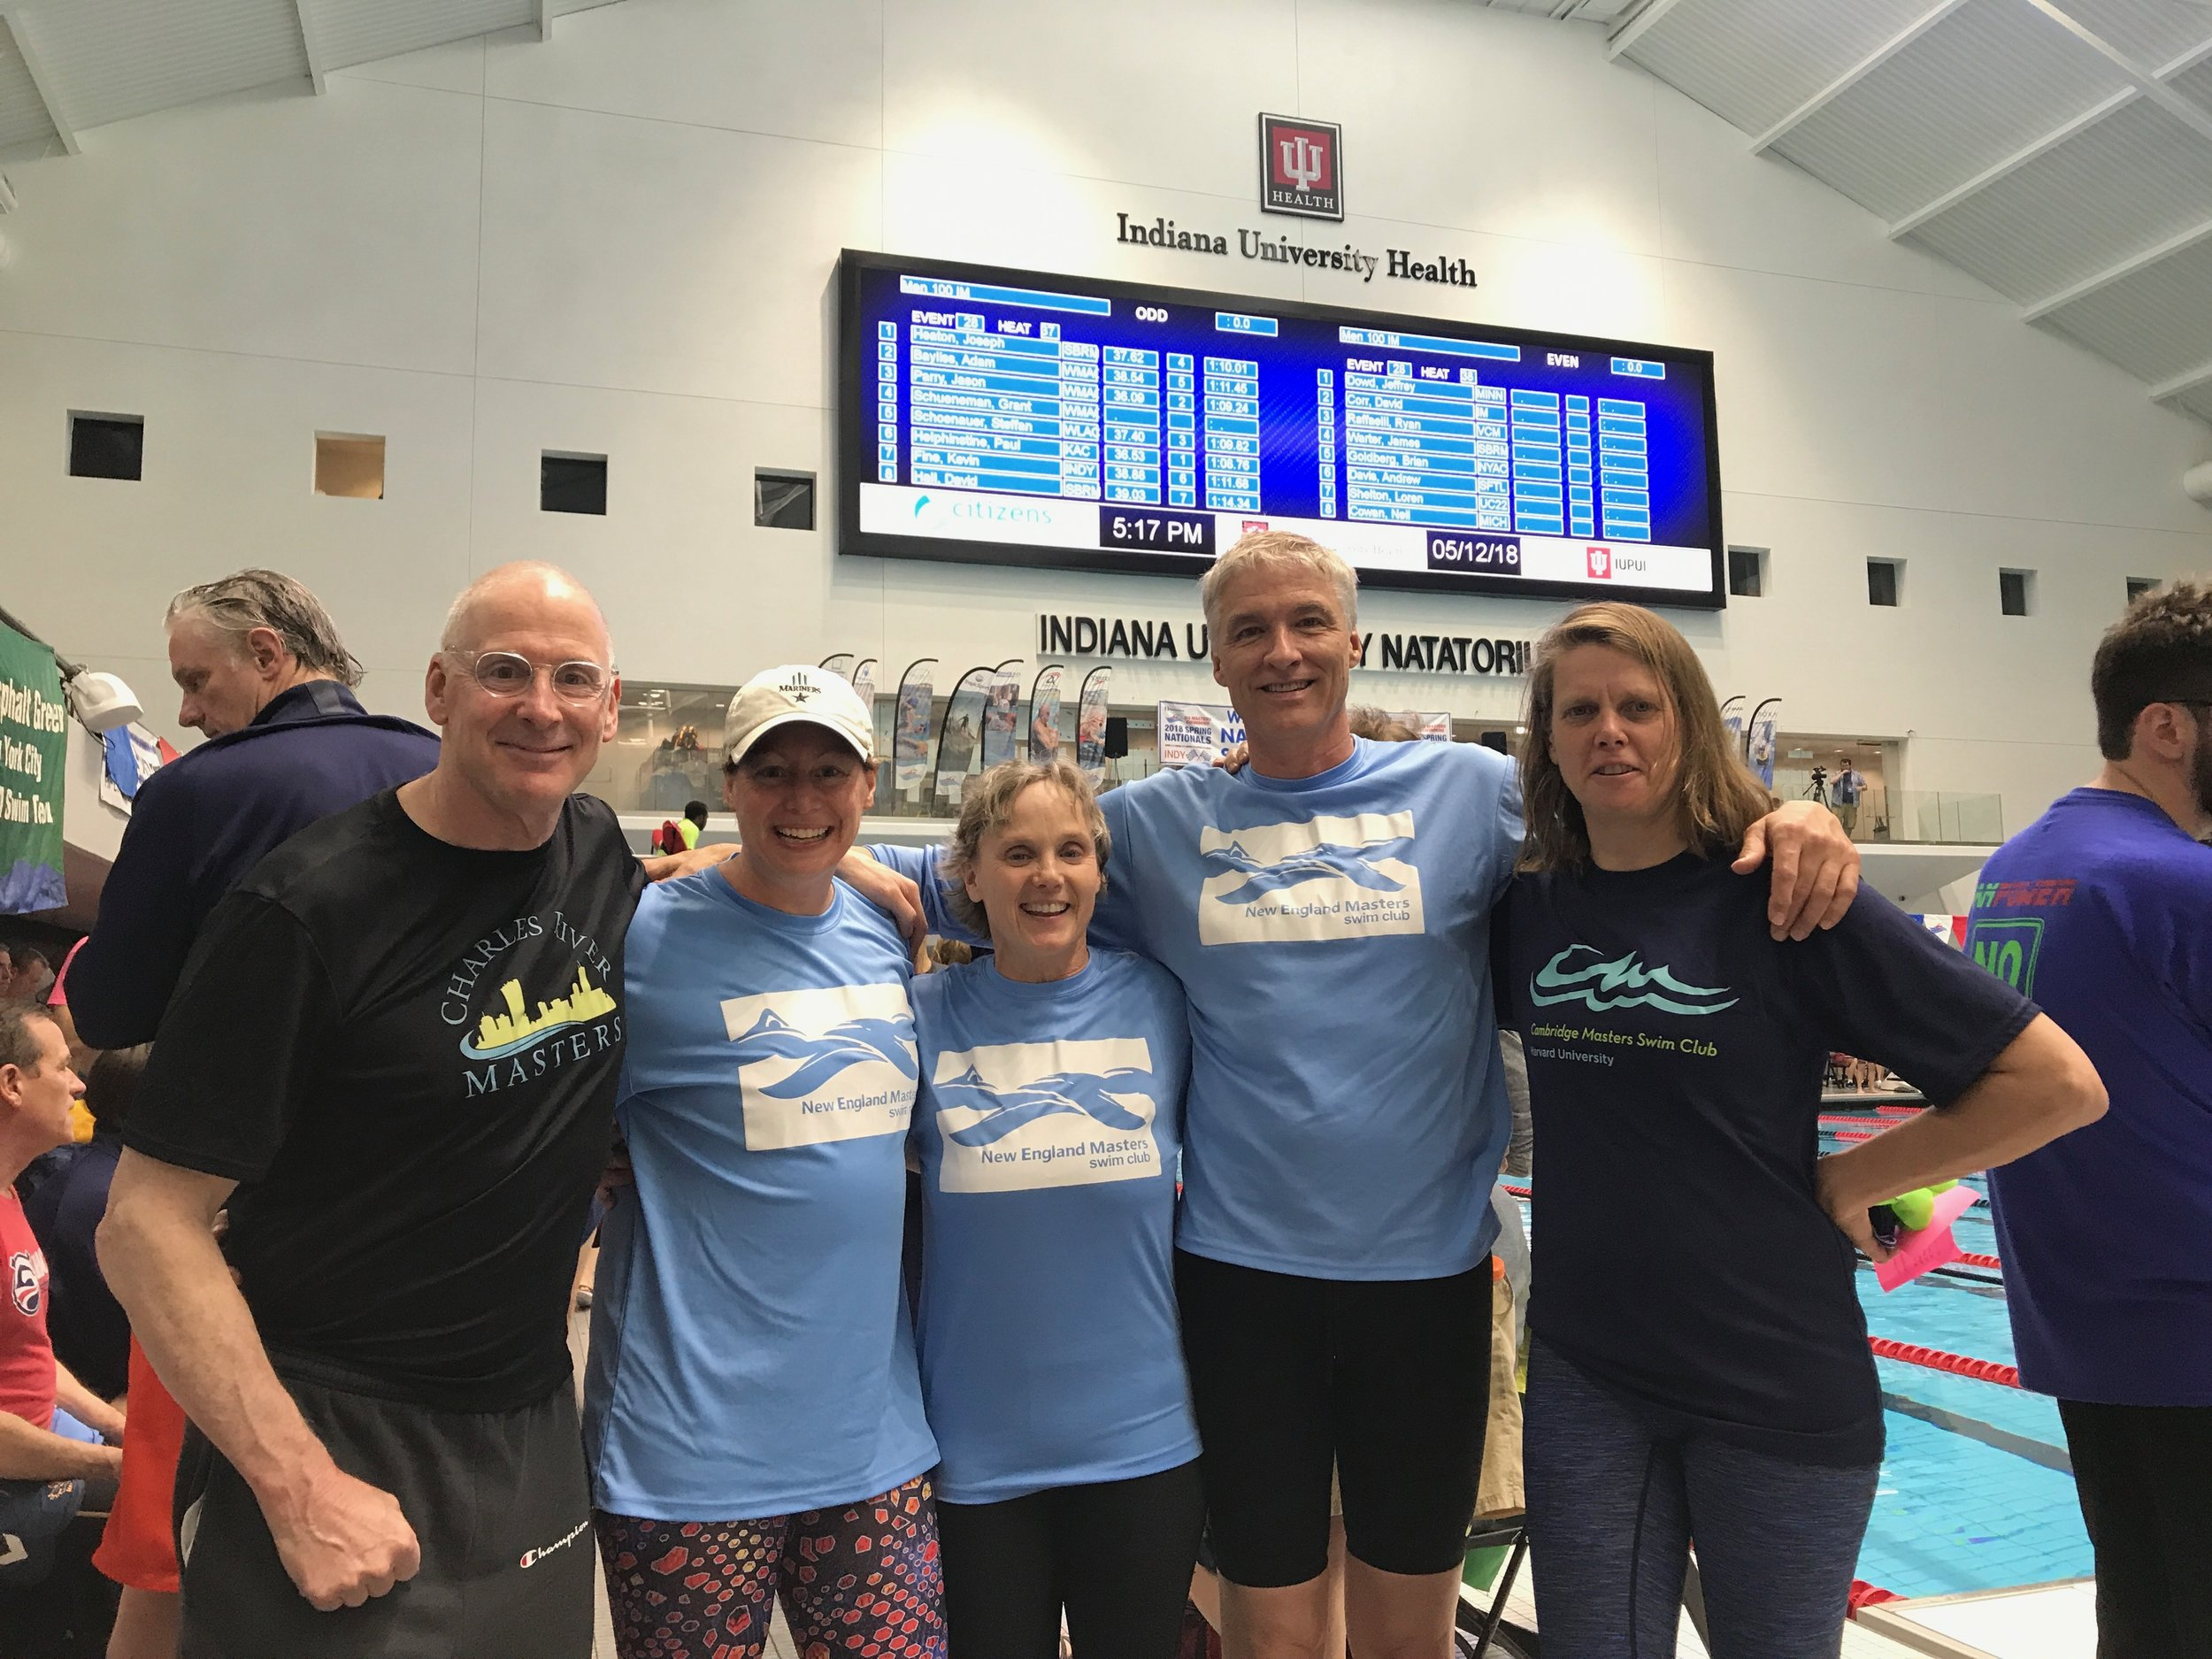 CRM swimmers Dan Epstein, Jen Downing, Sue Jensen, Bill Davis, and Chris Pasterczyk